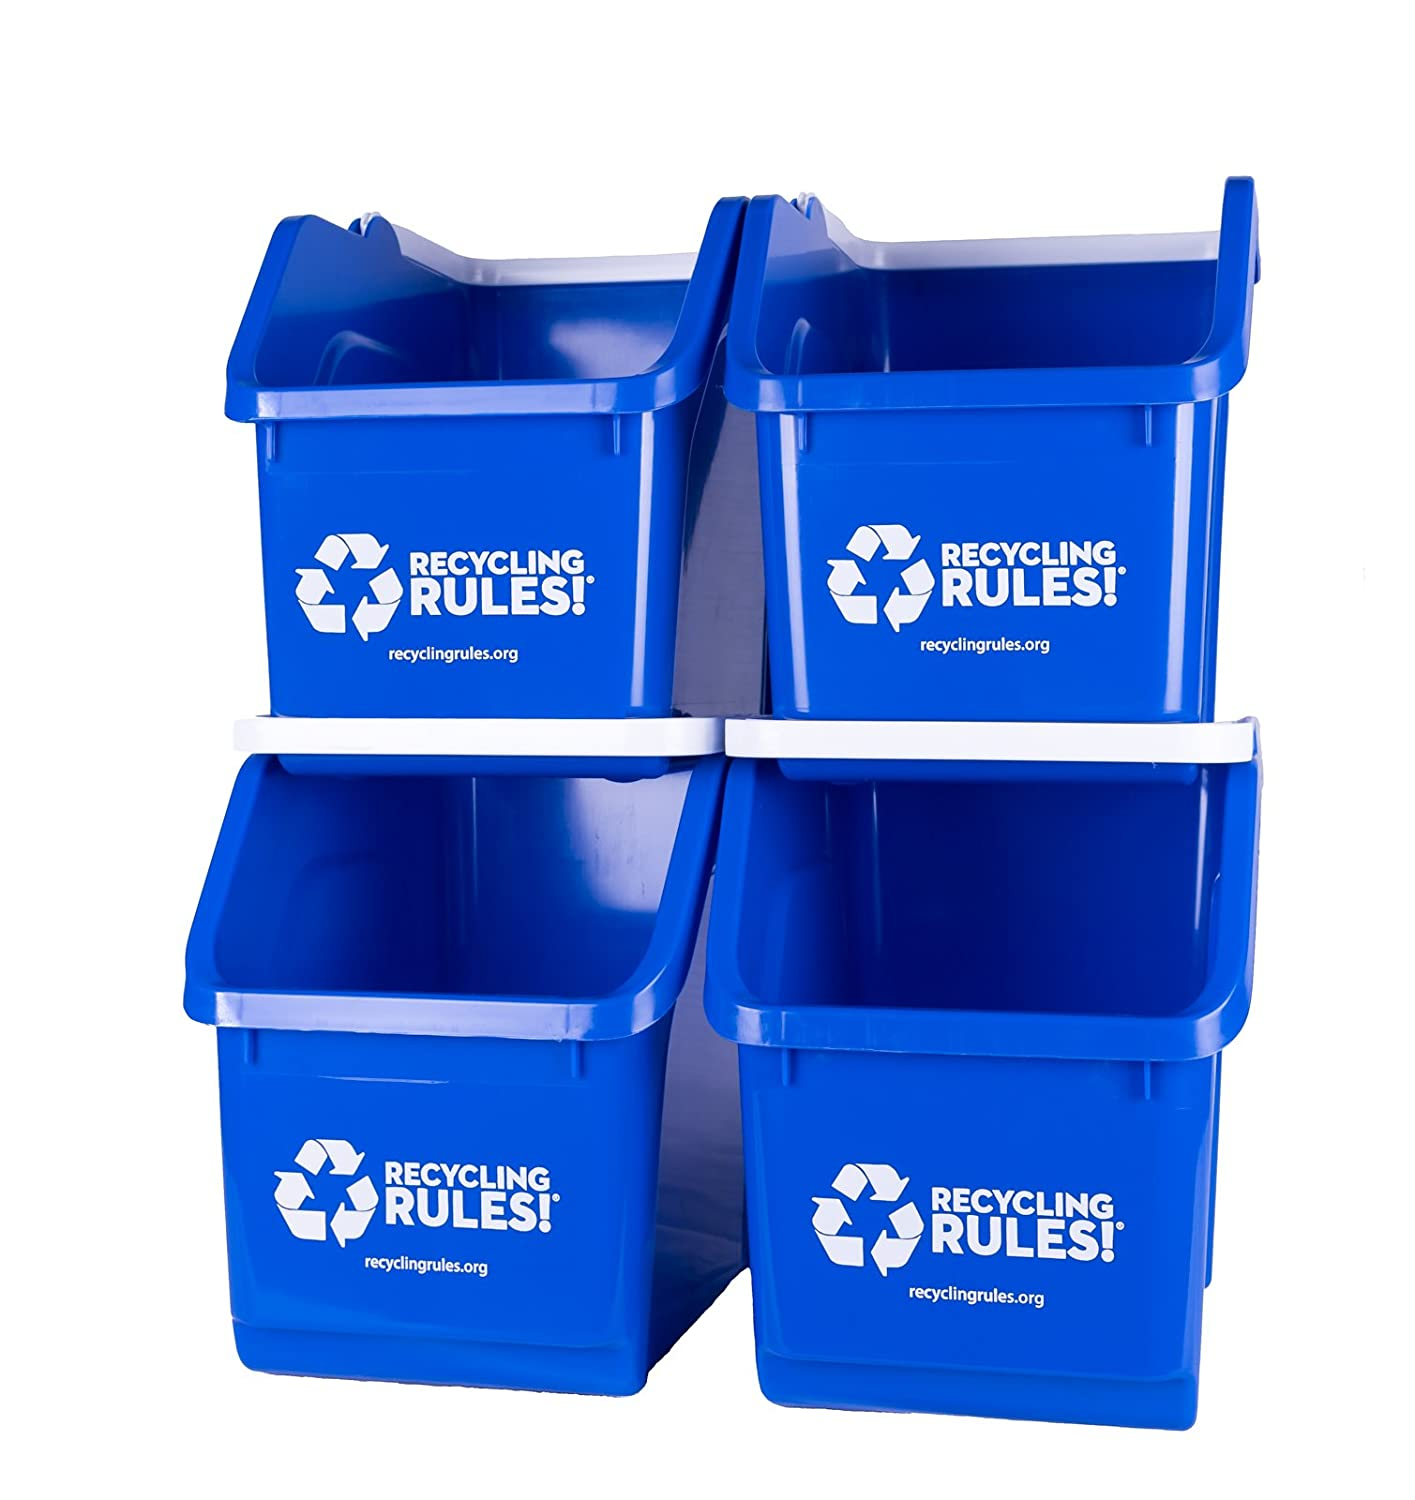 4 Directly managed store Pack of Bins - Blue Han Stackable Container with Recycling Outstanding Bin